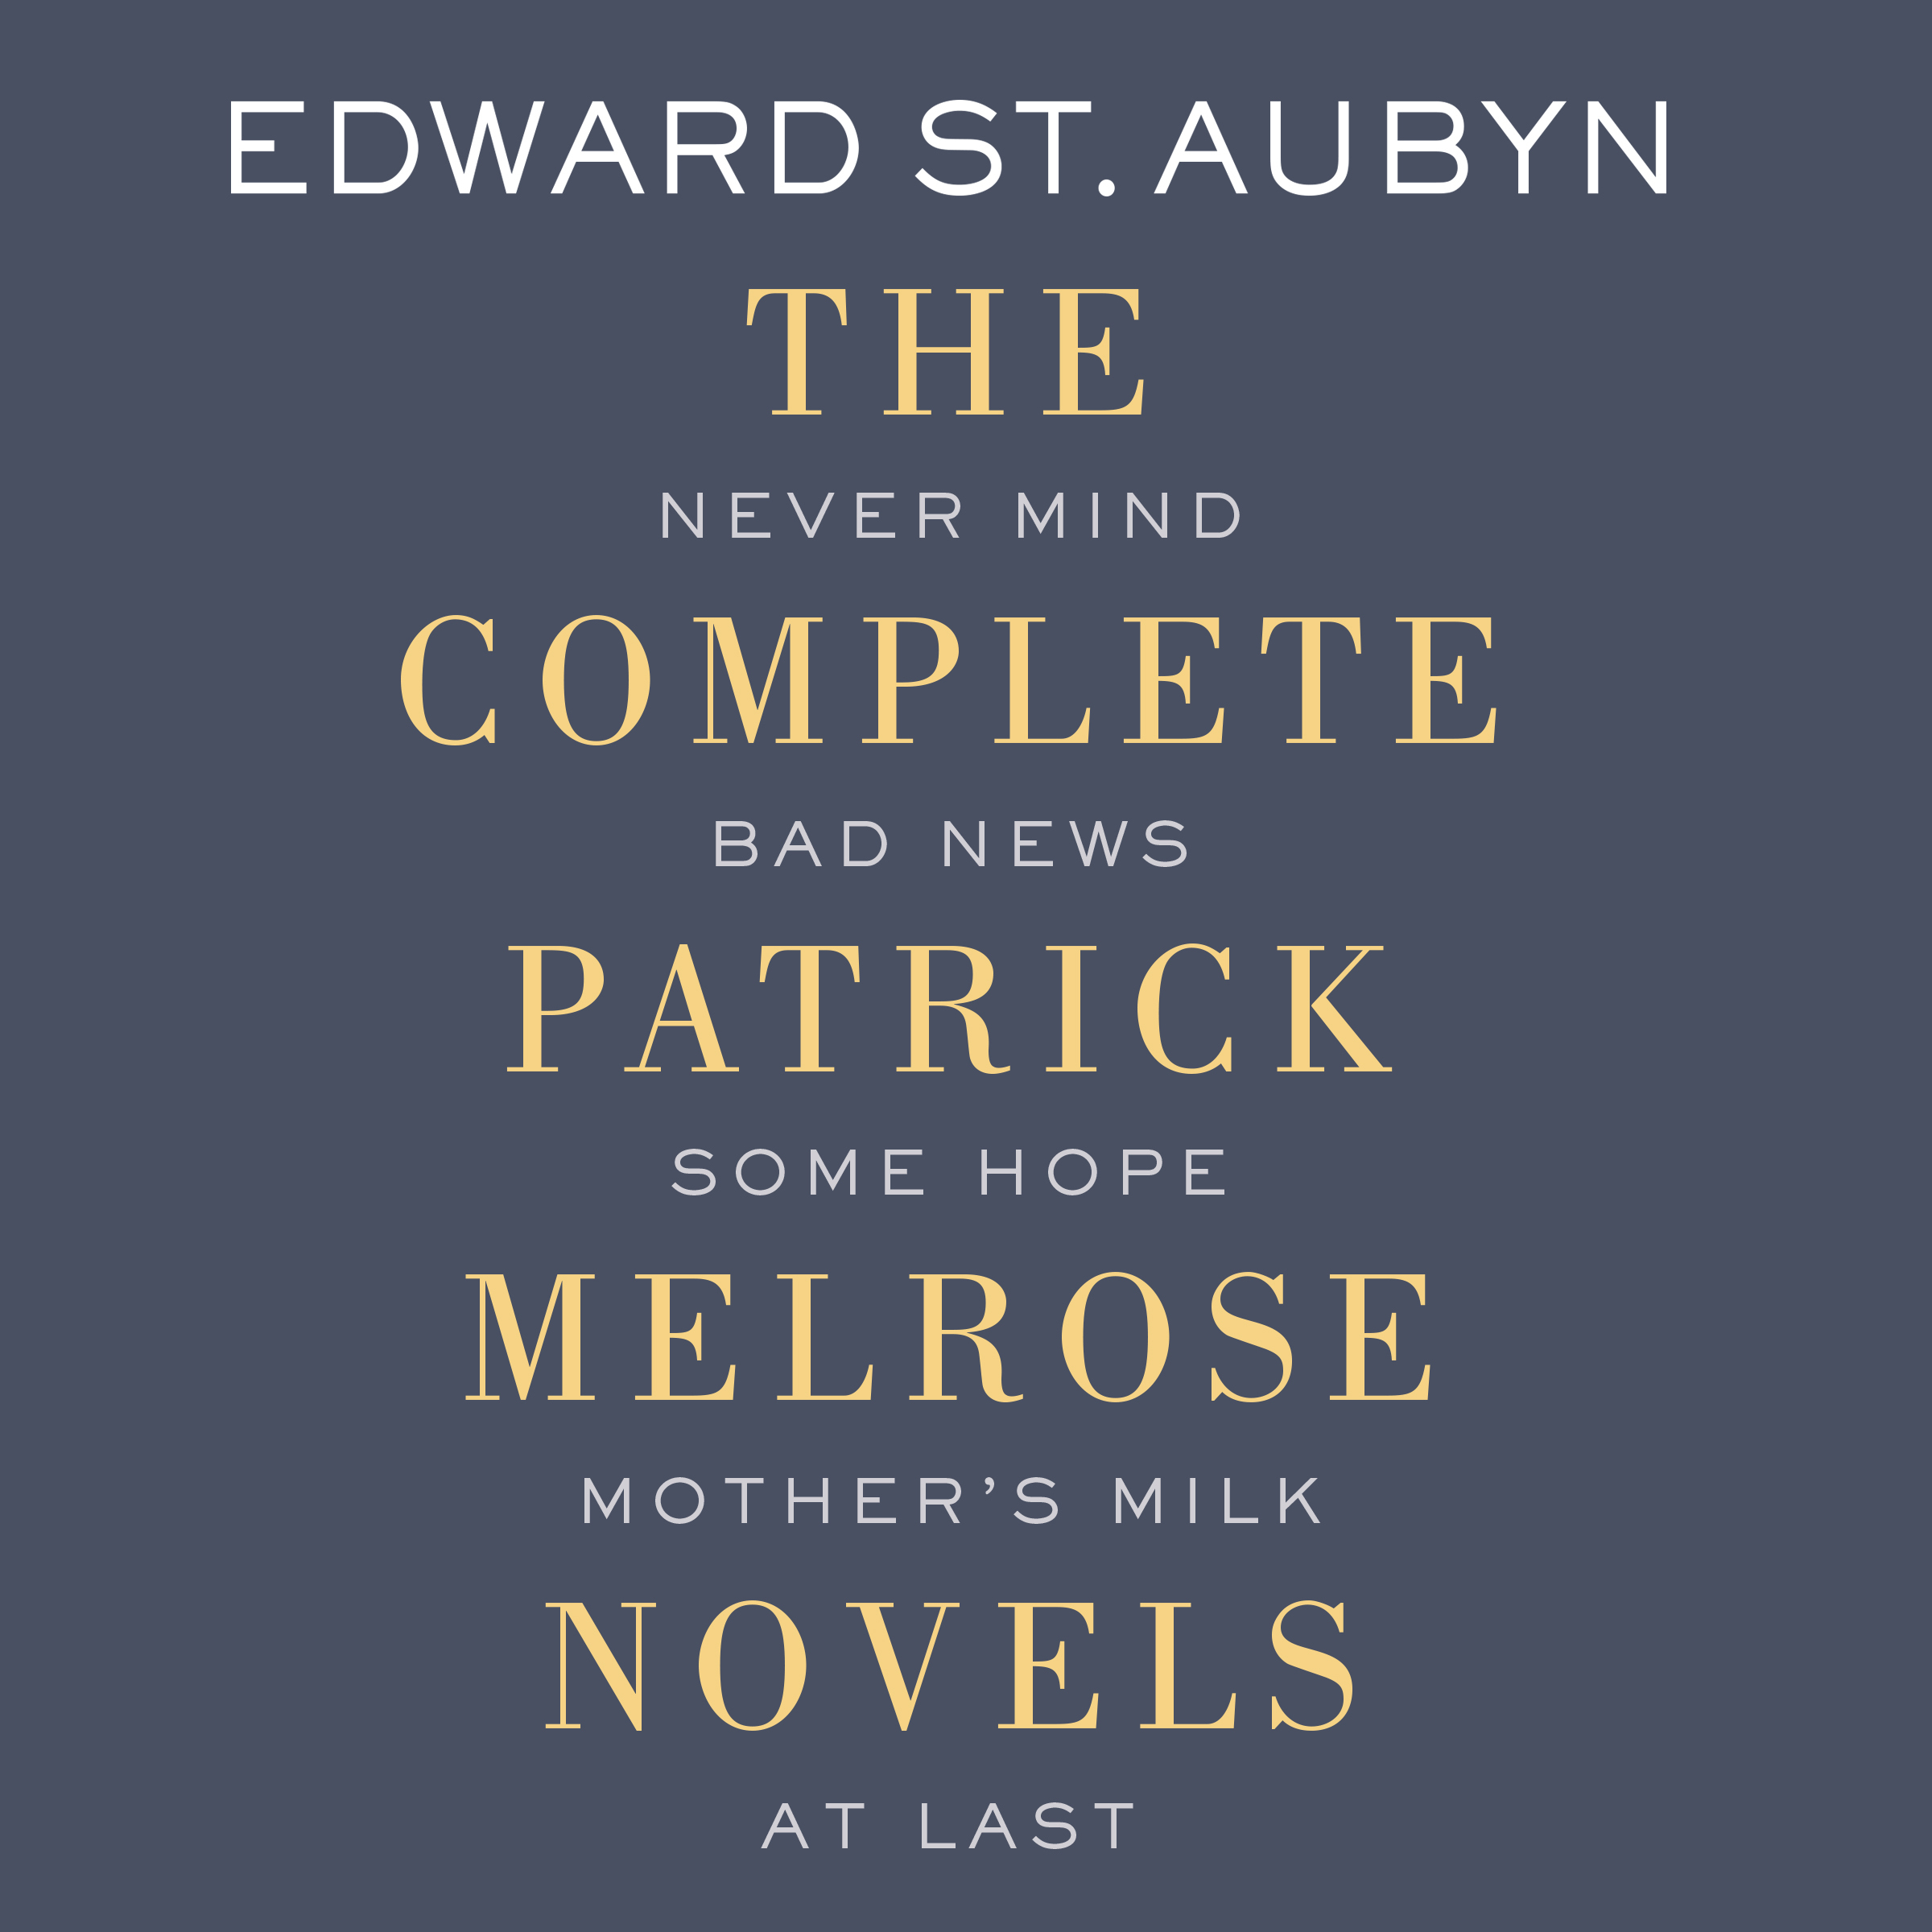 Printable The Complete Patrick Melrose Novels: Never Mind, Bad News, Some Hope, Mother's Milk, and At Last Audiobook Cover Art